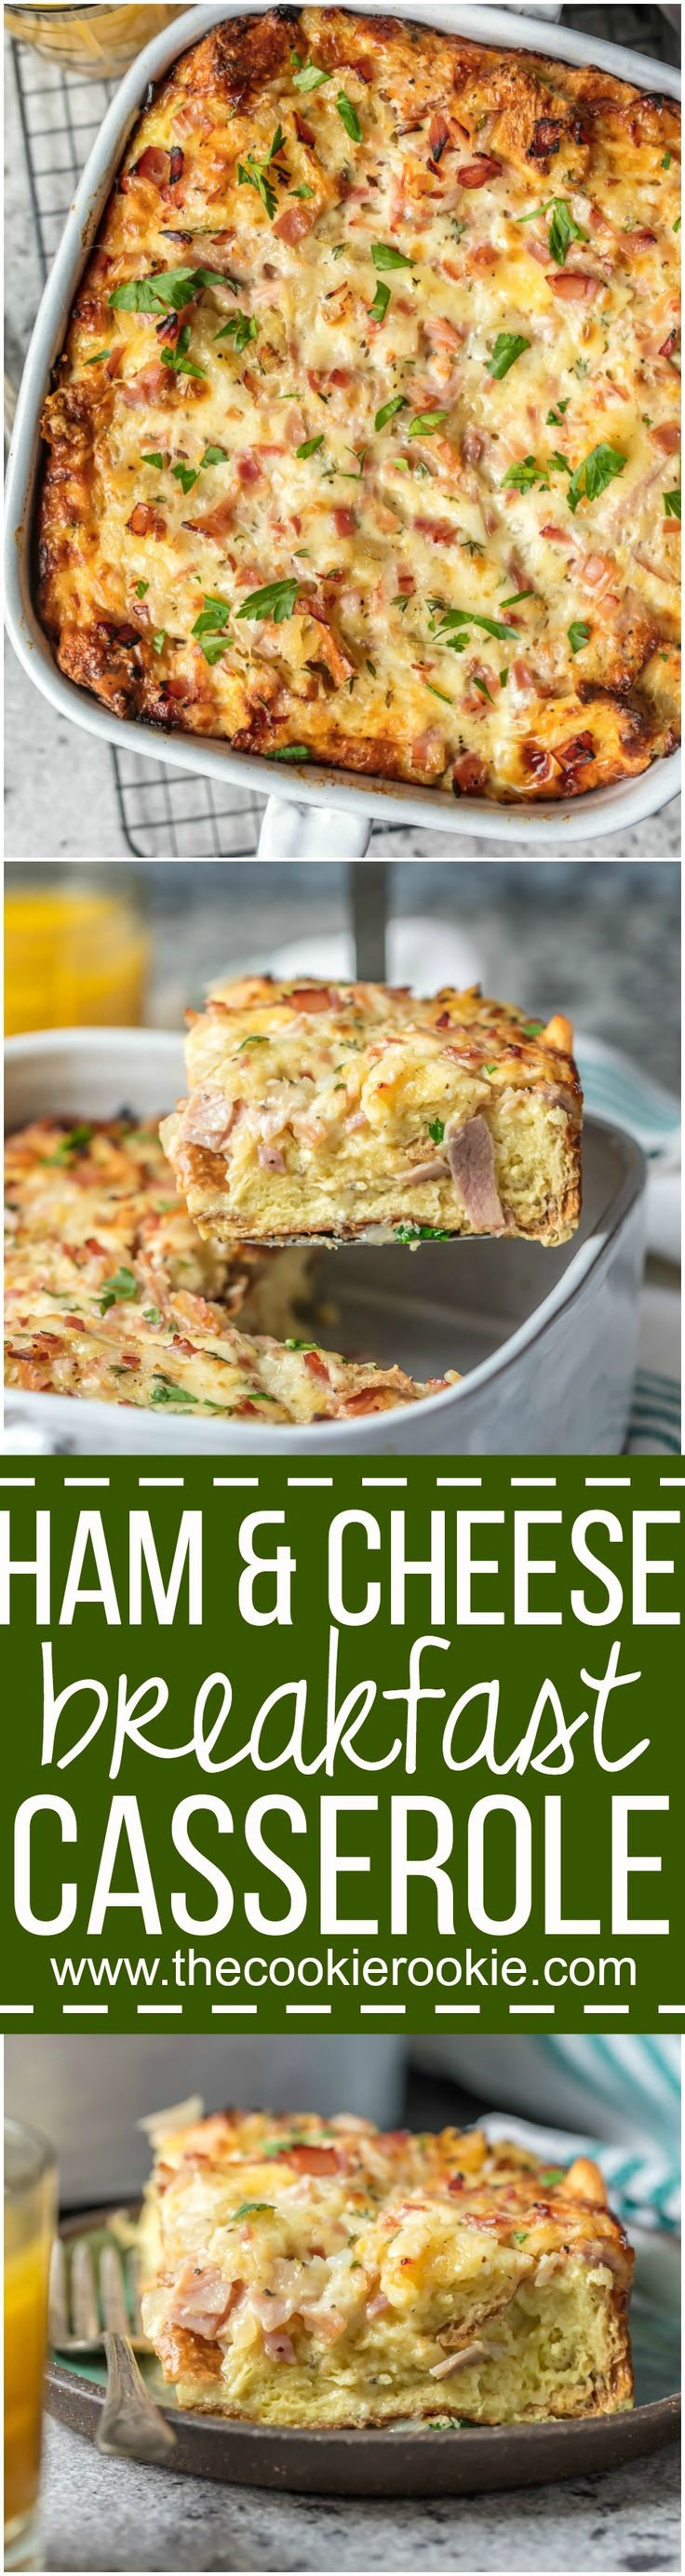 This HAM AND CHEESE BREAKFAST CASSEROLE is our favorite make ahead breakfast for any special occasion. Loaded with ham, cheese, , bread, eggs, herbs, and more! Sure to please everyone and just so easy to make! via @beckygallhardin